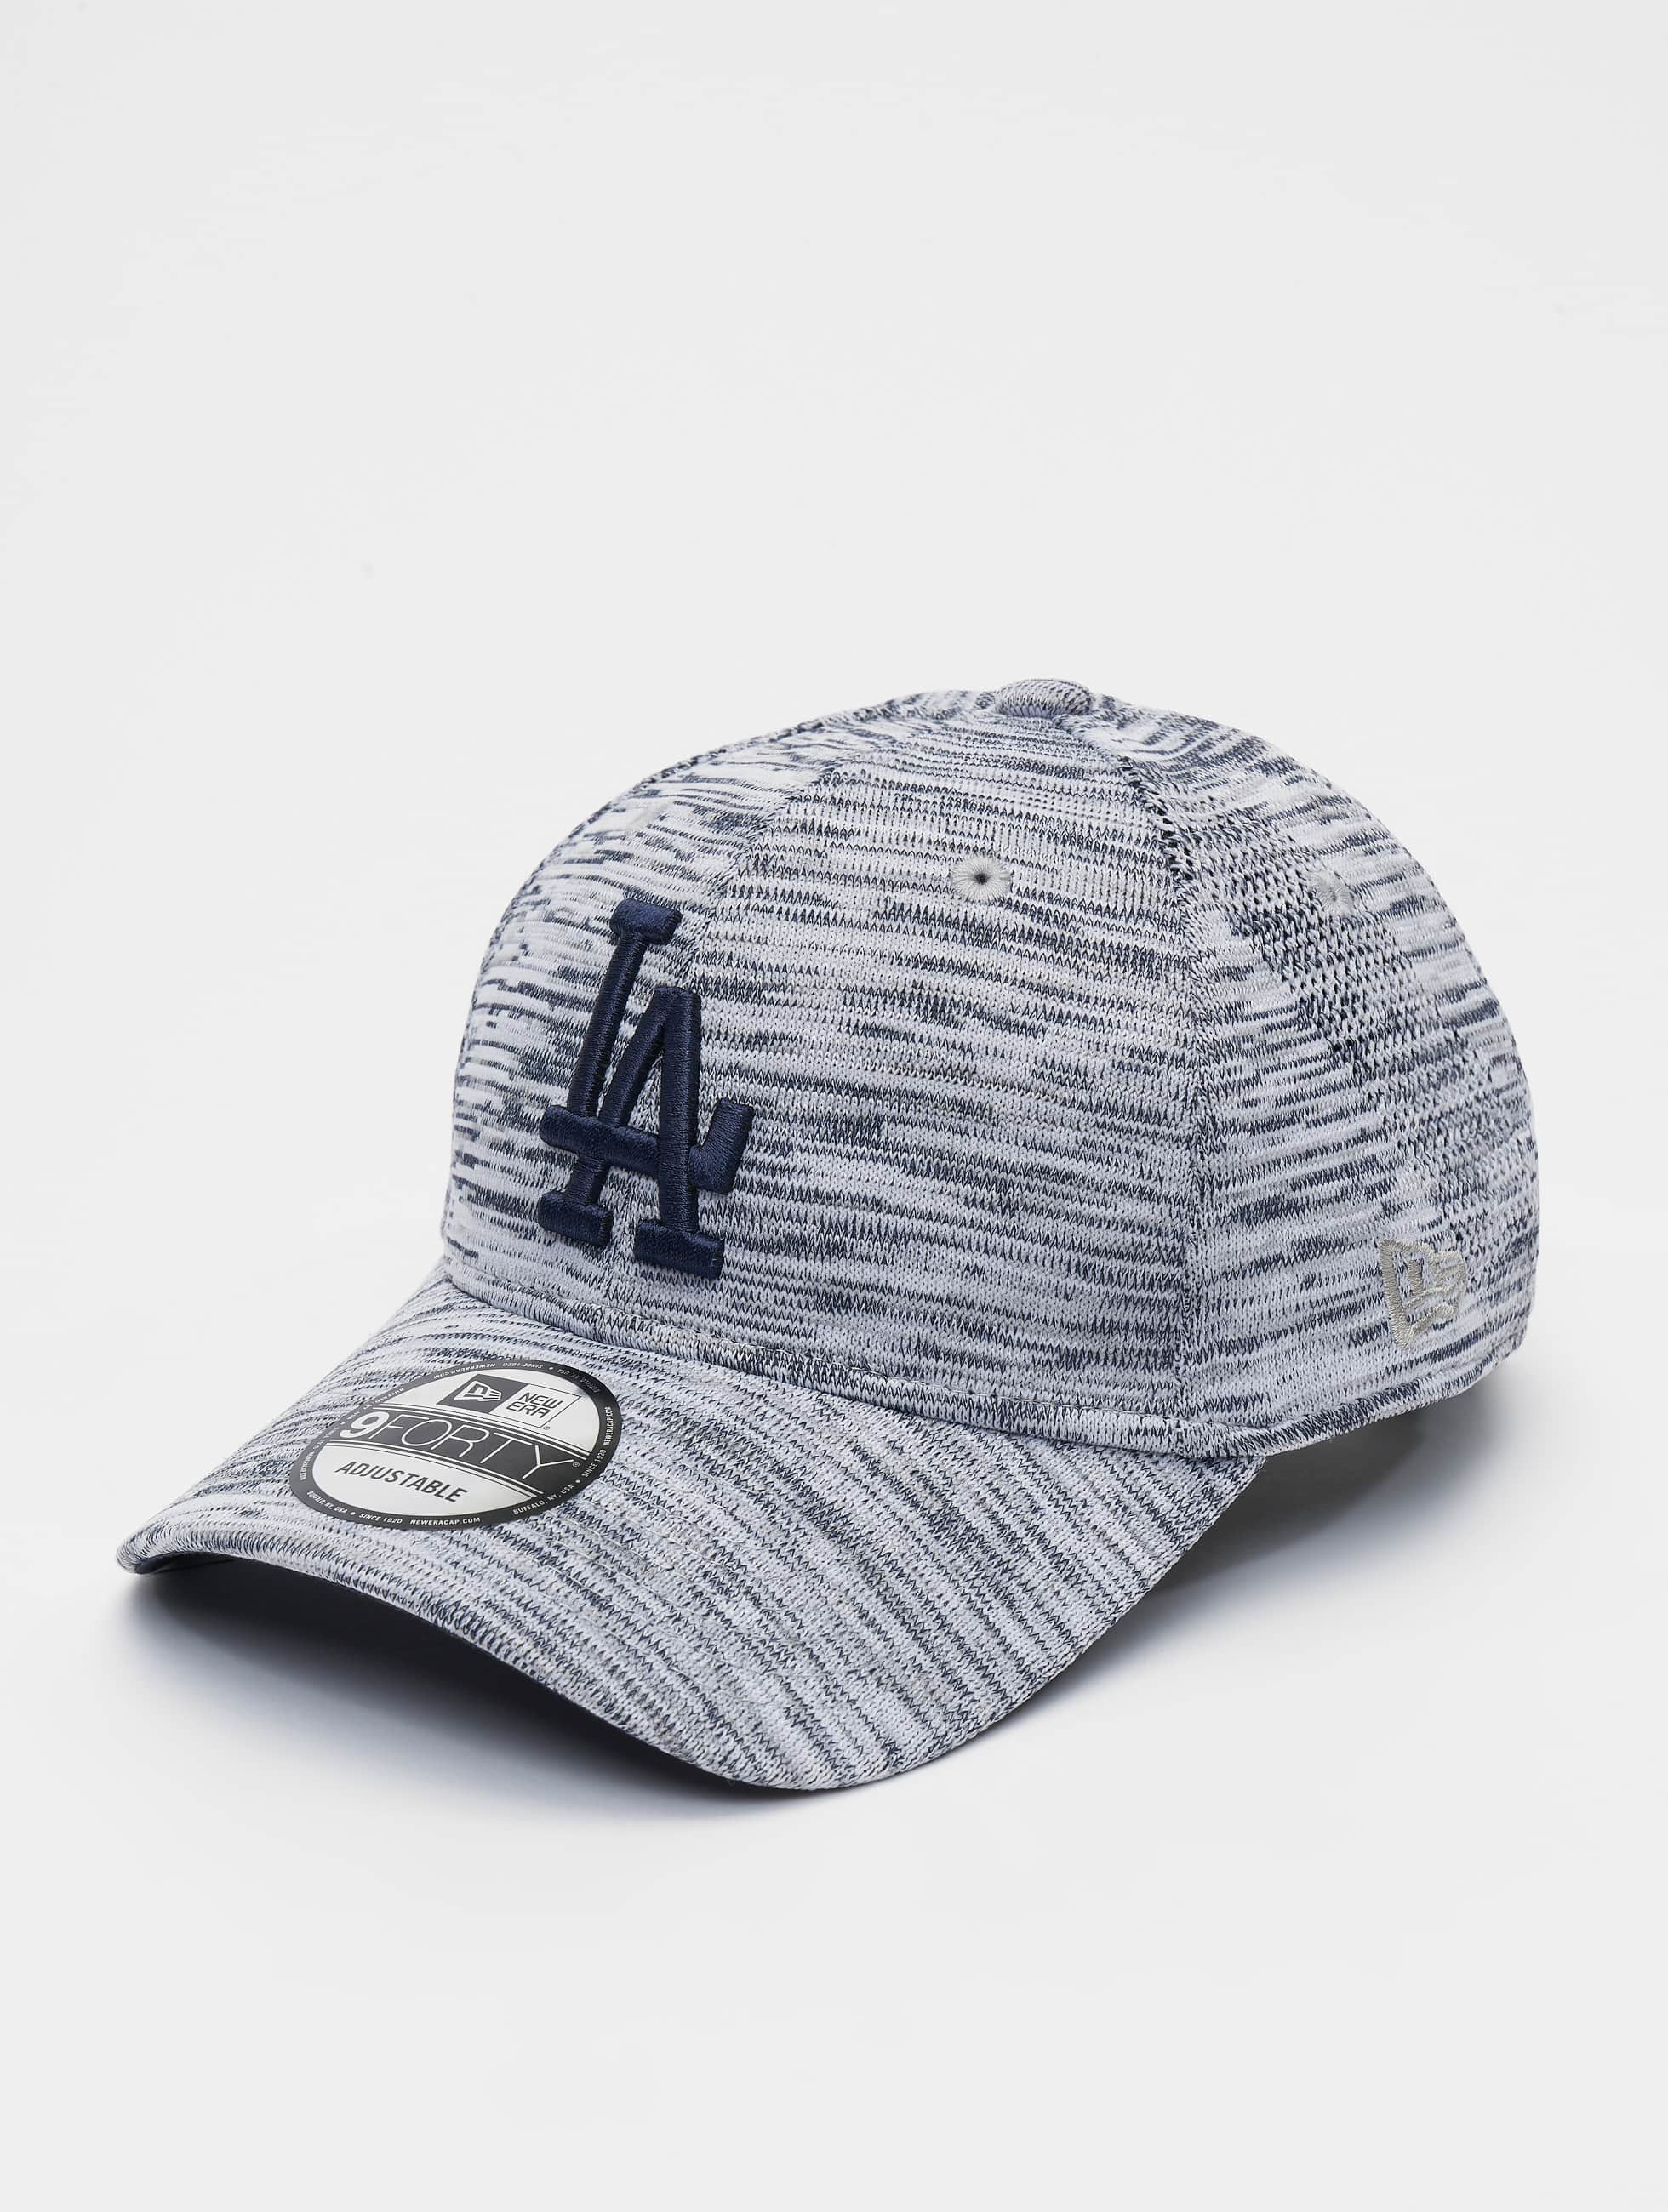 New Era Casquette 9FORTY Engineered Fit L.A Dodgers Noir chin/é